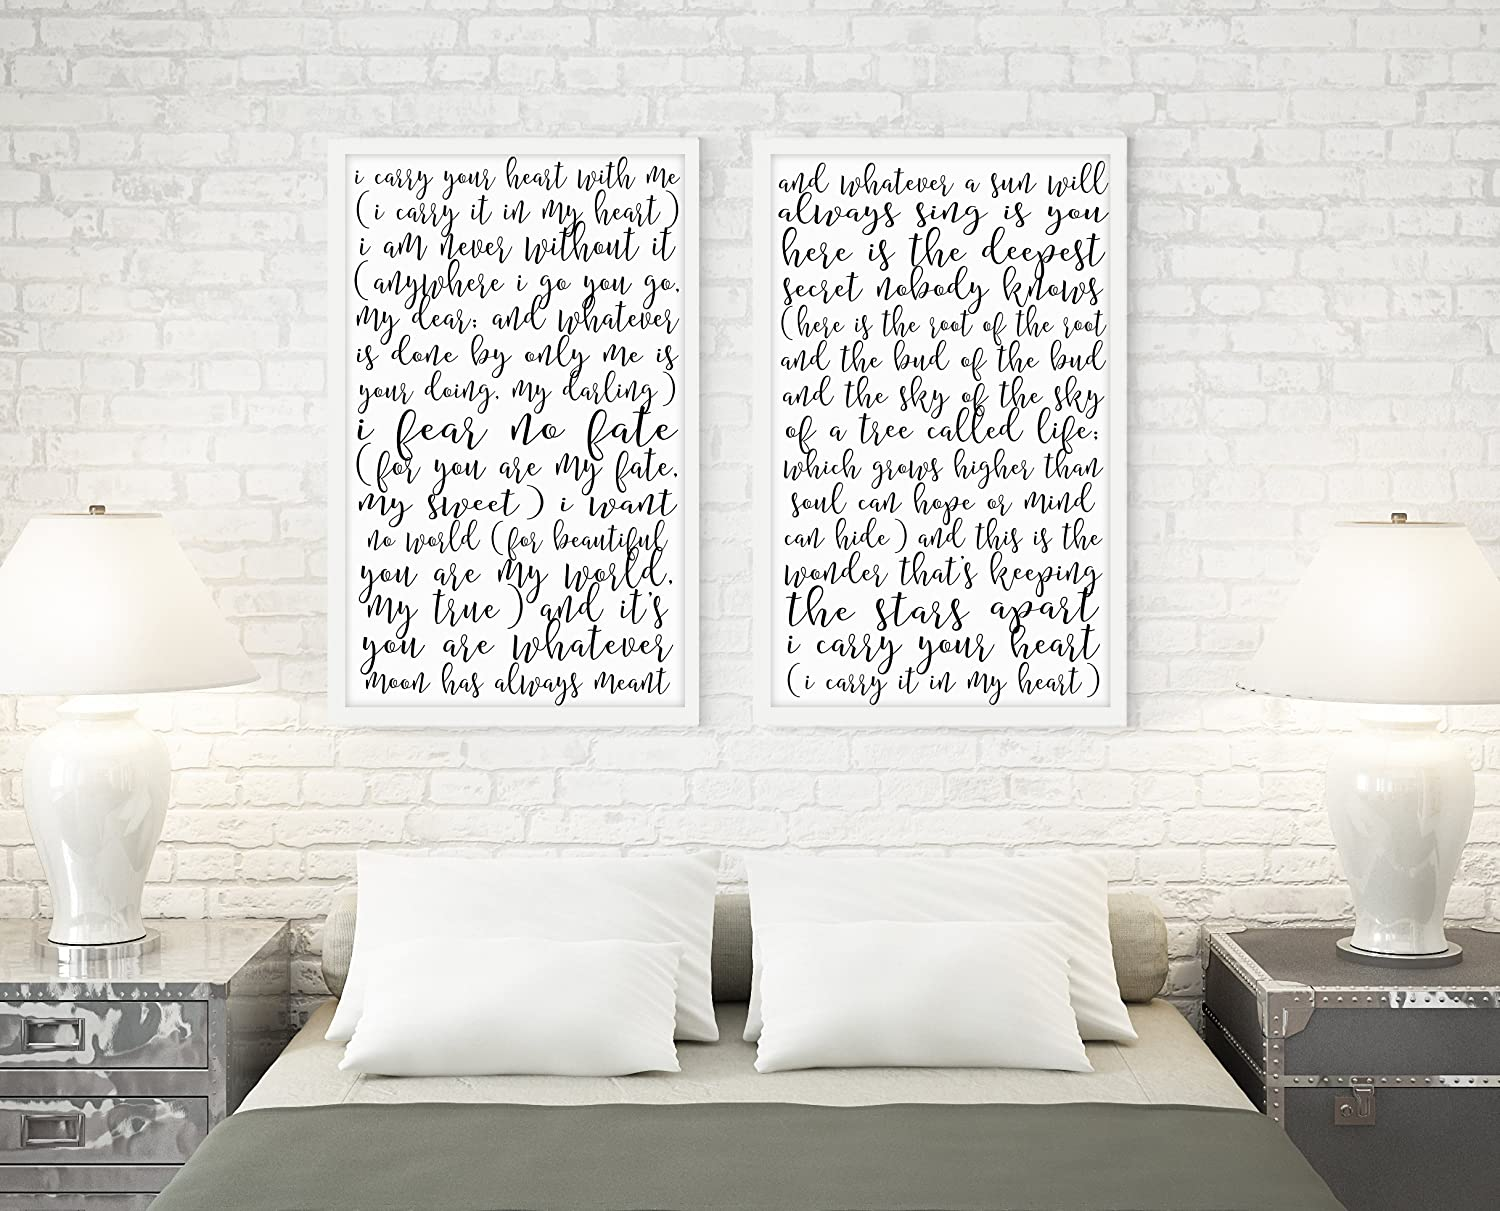 SpecsDecorCo Limited time trial price I Carry Your Heart Poem of Set Artwork Pri 2 Prints Luxury goods